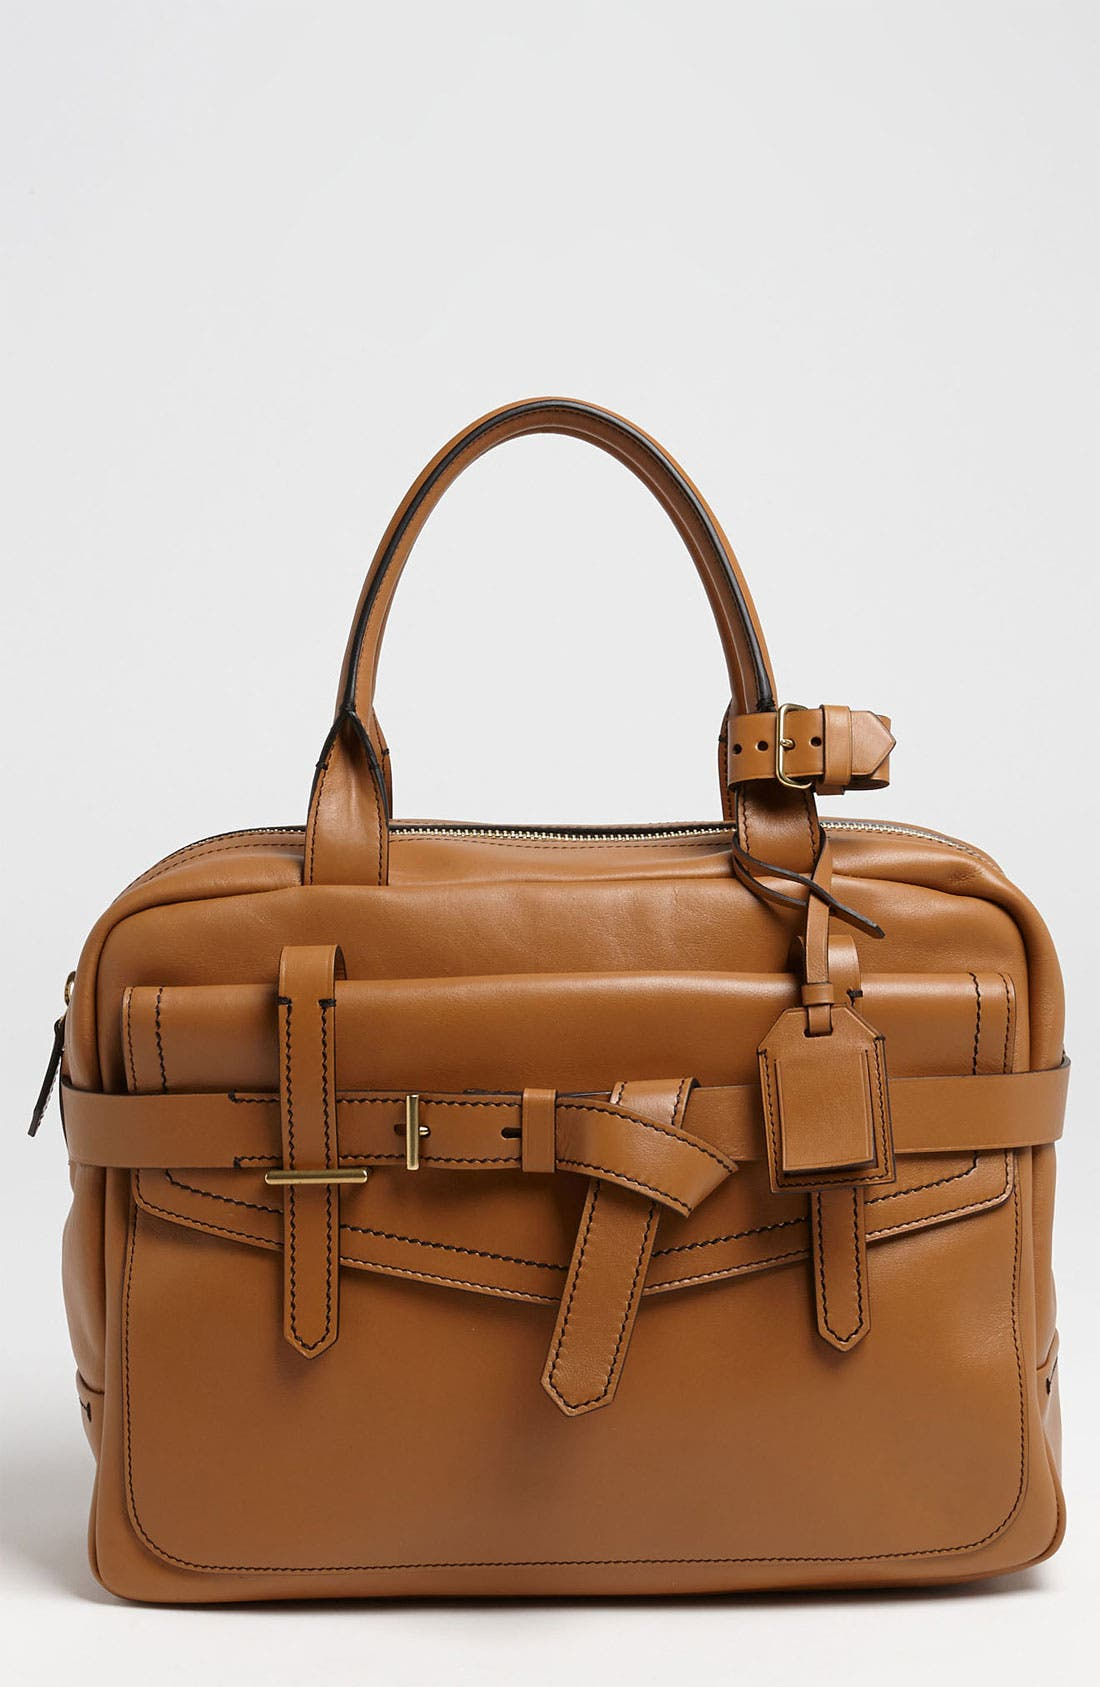 'Fighter' Leather Satchel,                             Main thumbnail 1, color,                             200